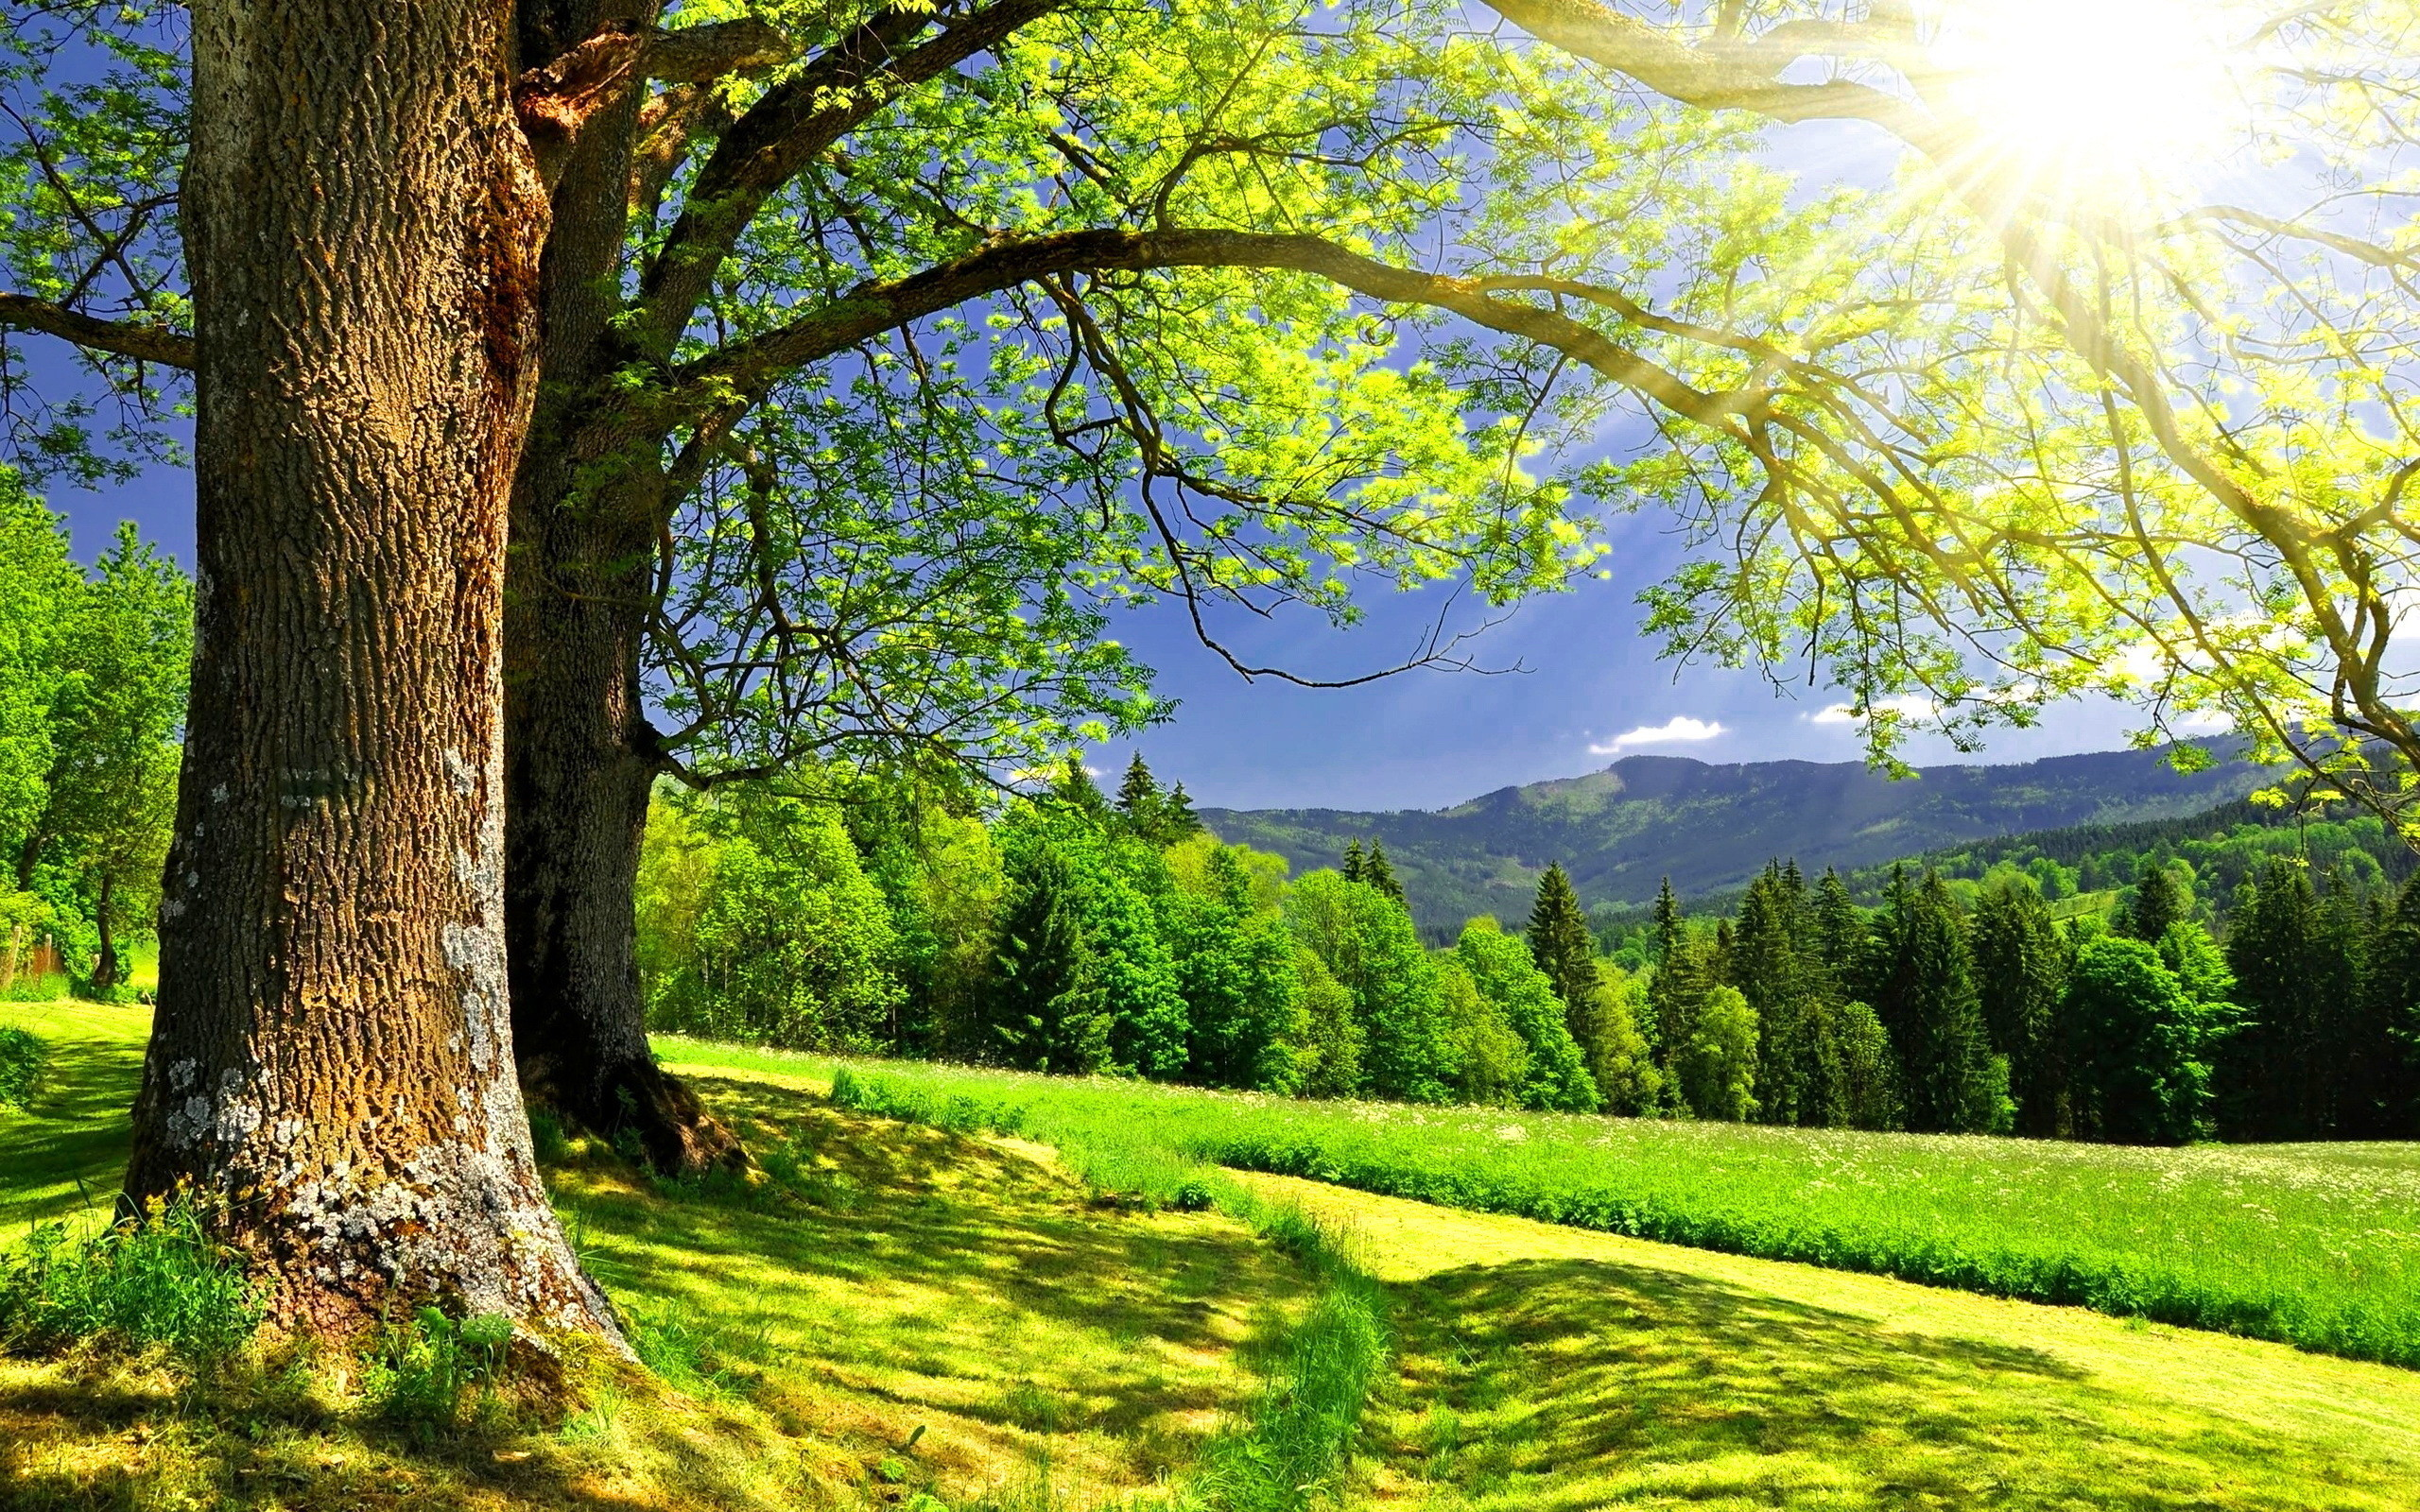 2560x1600 Earth - Spring Summer Landscape Tree Forest Sun Sunbeam Sunlight Wallpaper